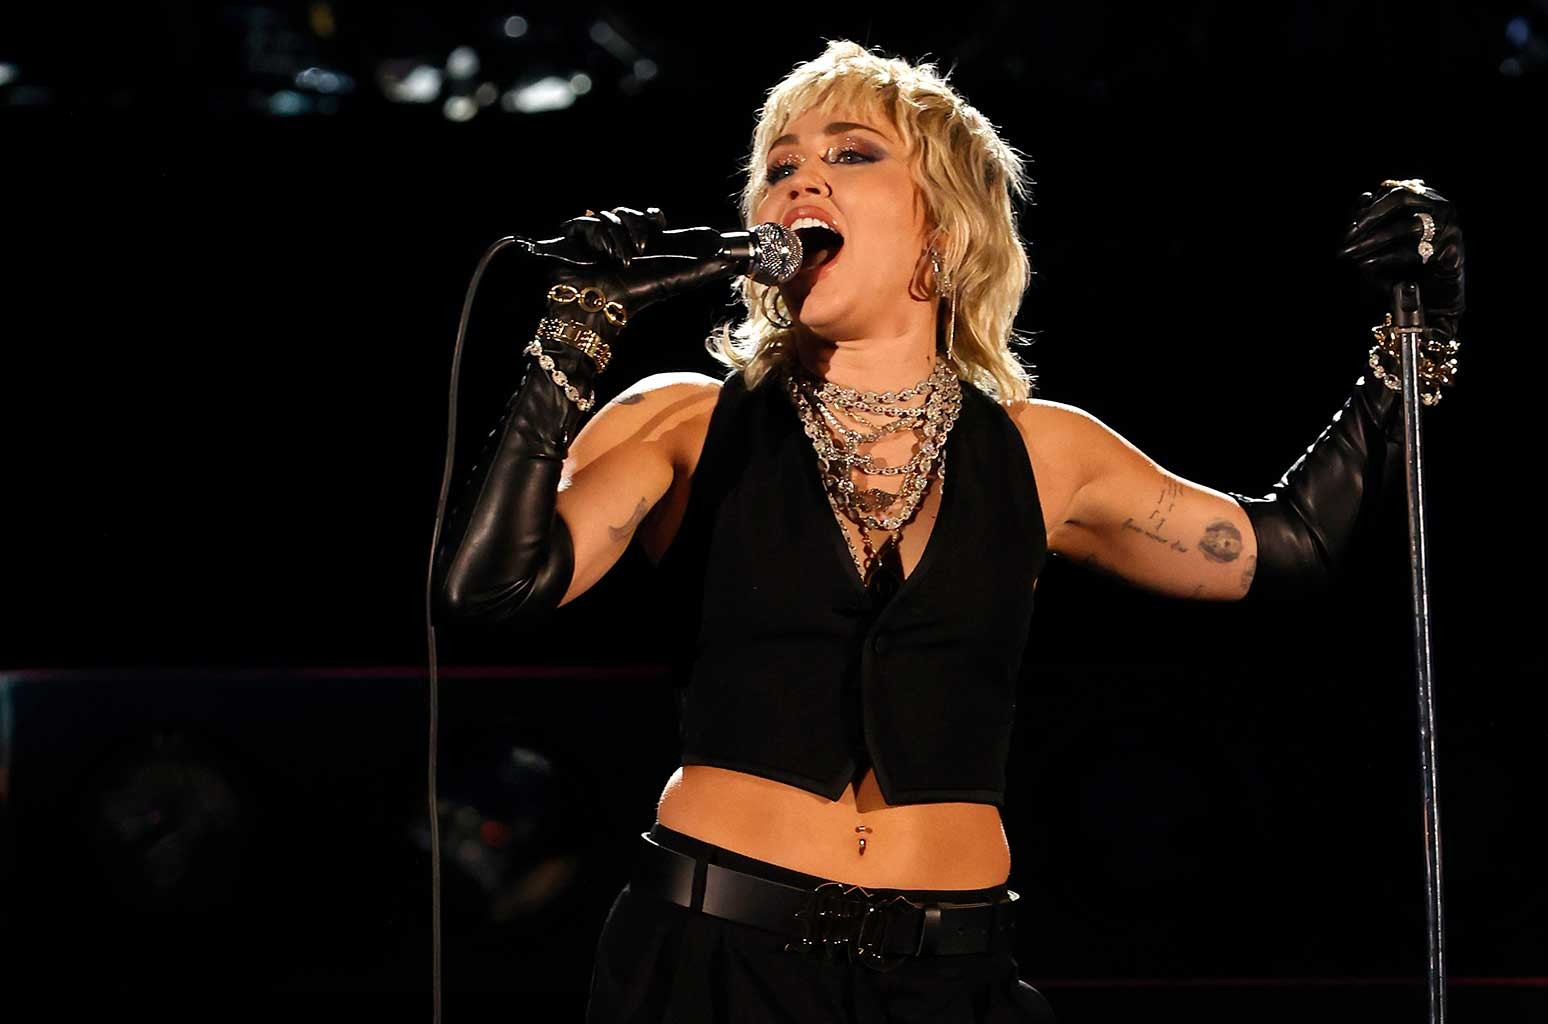 Miley Cyrus Rocks Out With Covers of Queen, Blondie For NCAA Final Four Concert